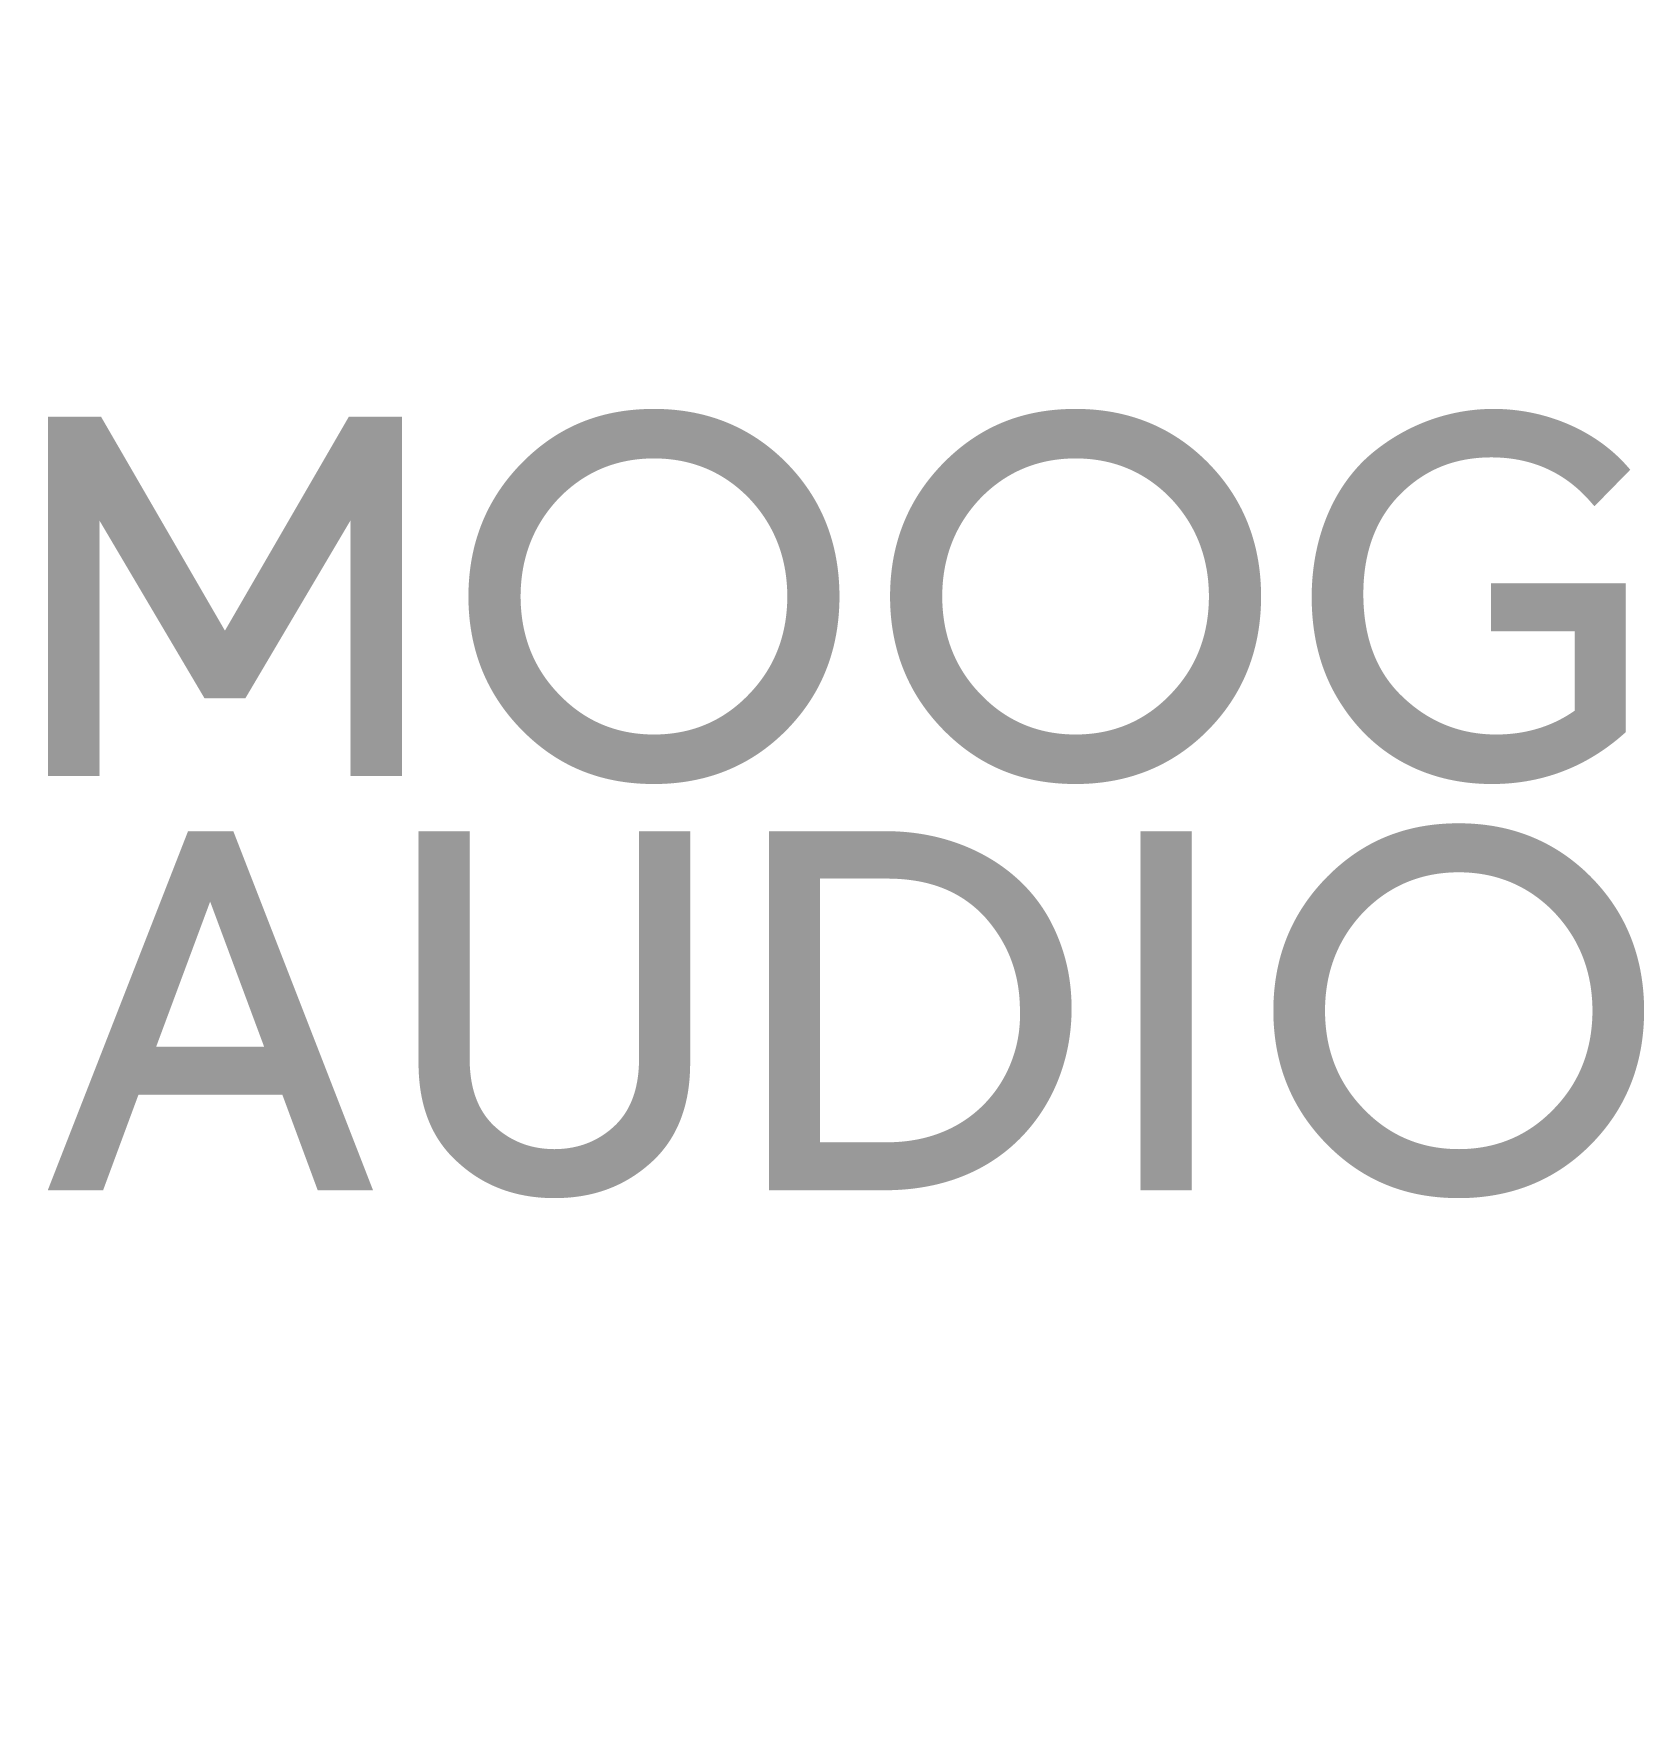 Moog Audio